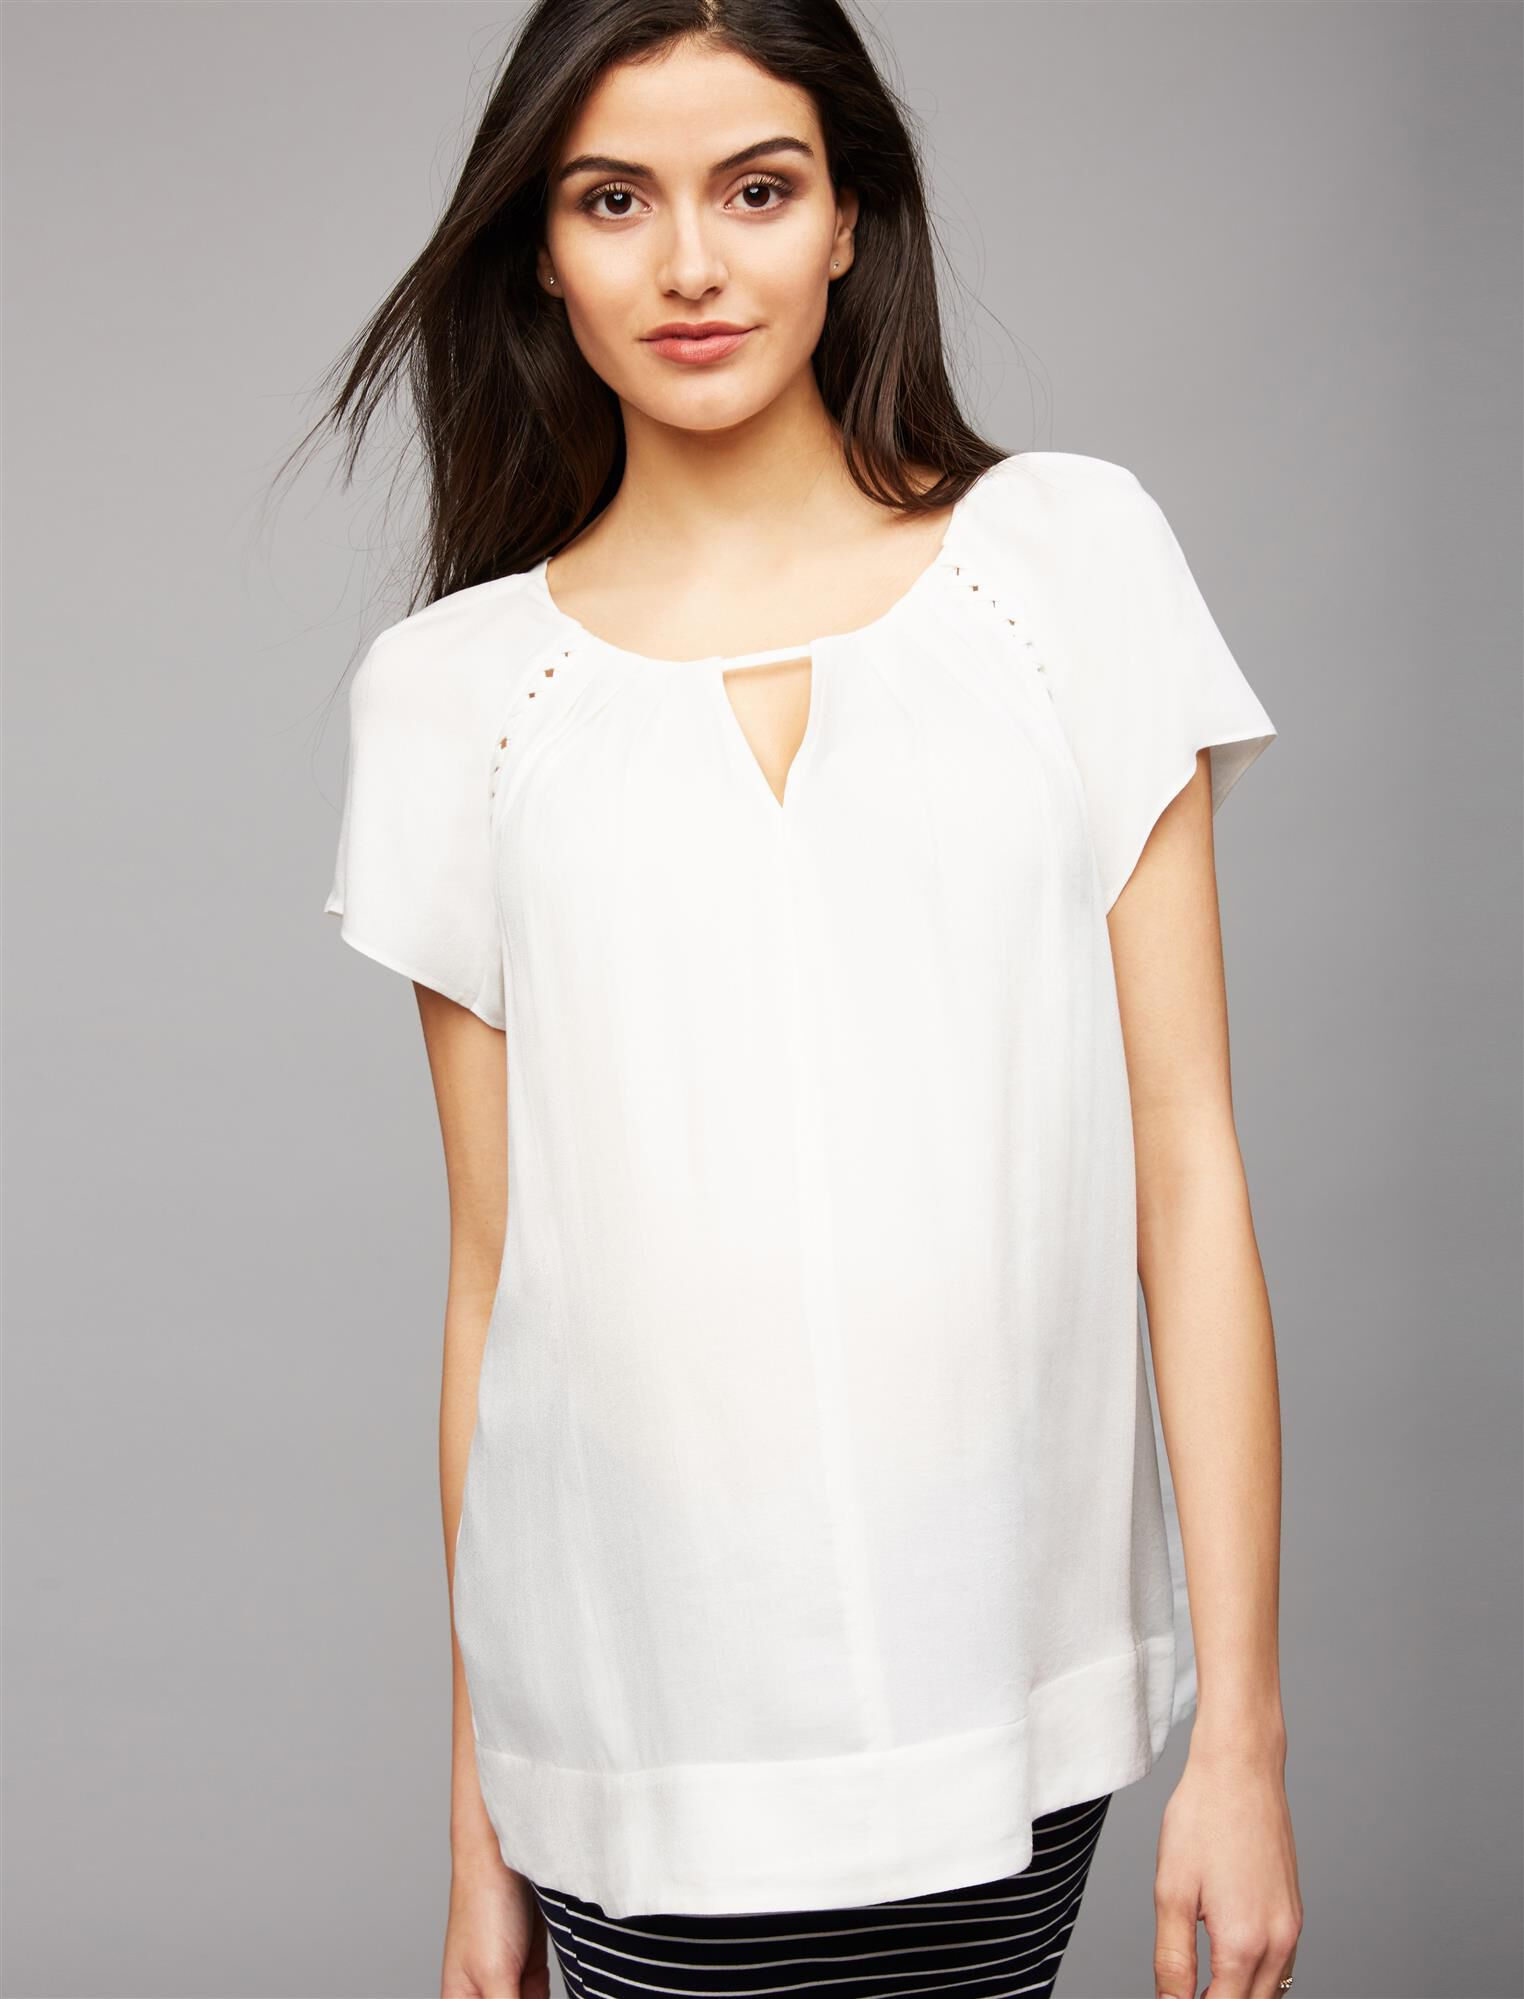 Ella Moss Keyhole Detail Maternity Top